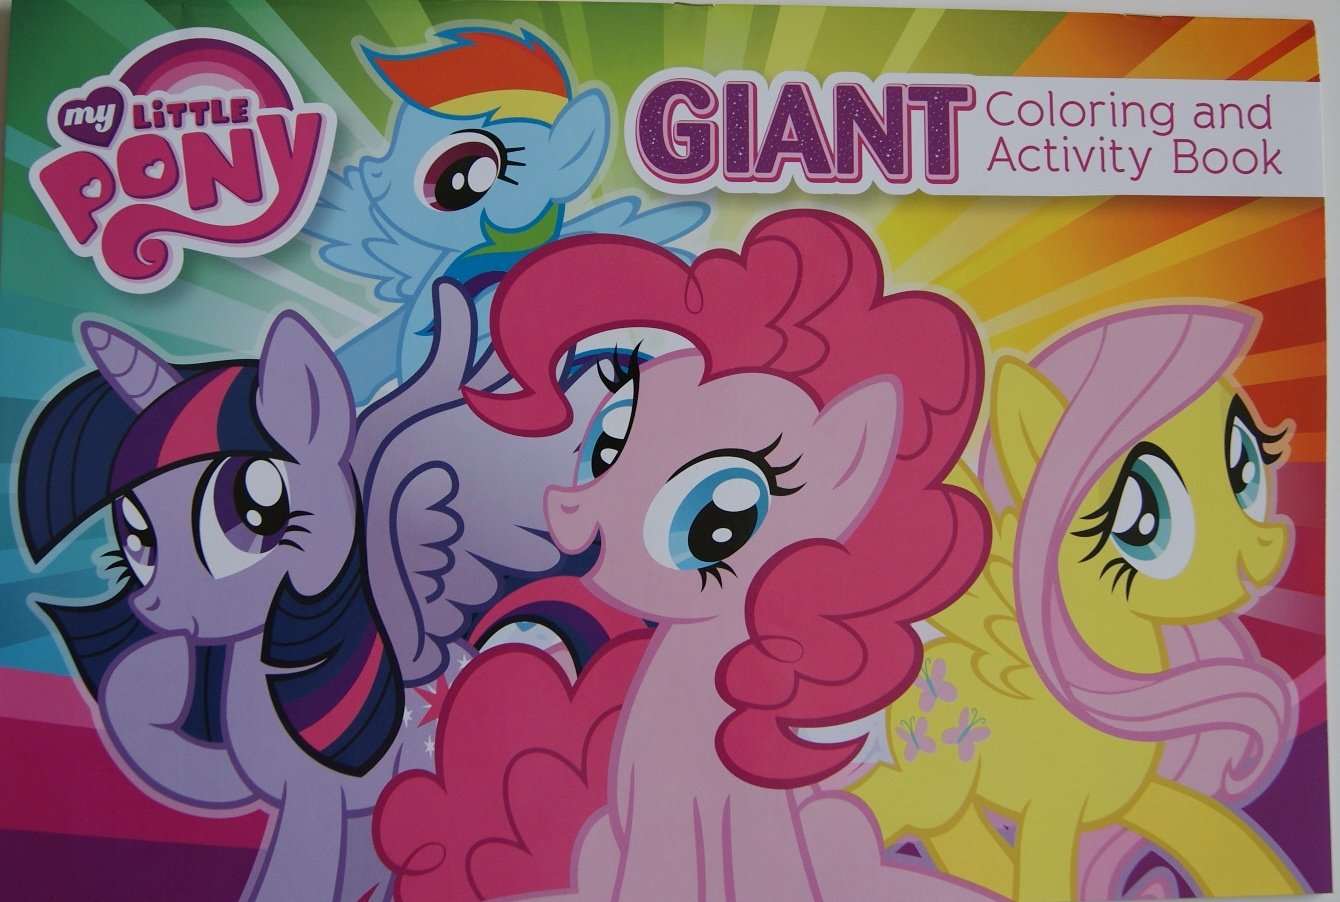 My Little Pony Giant Coloring and Activity Book archie giant comics 75th anniversary book